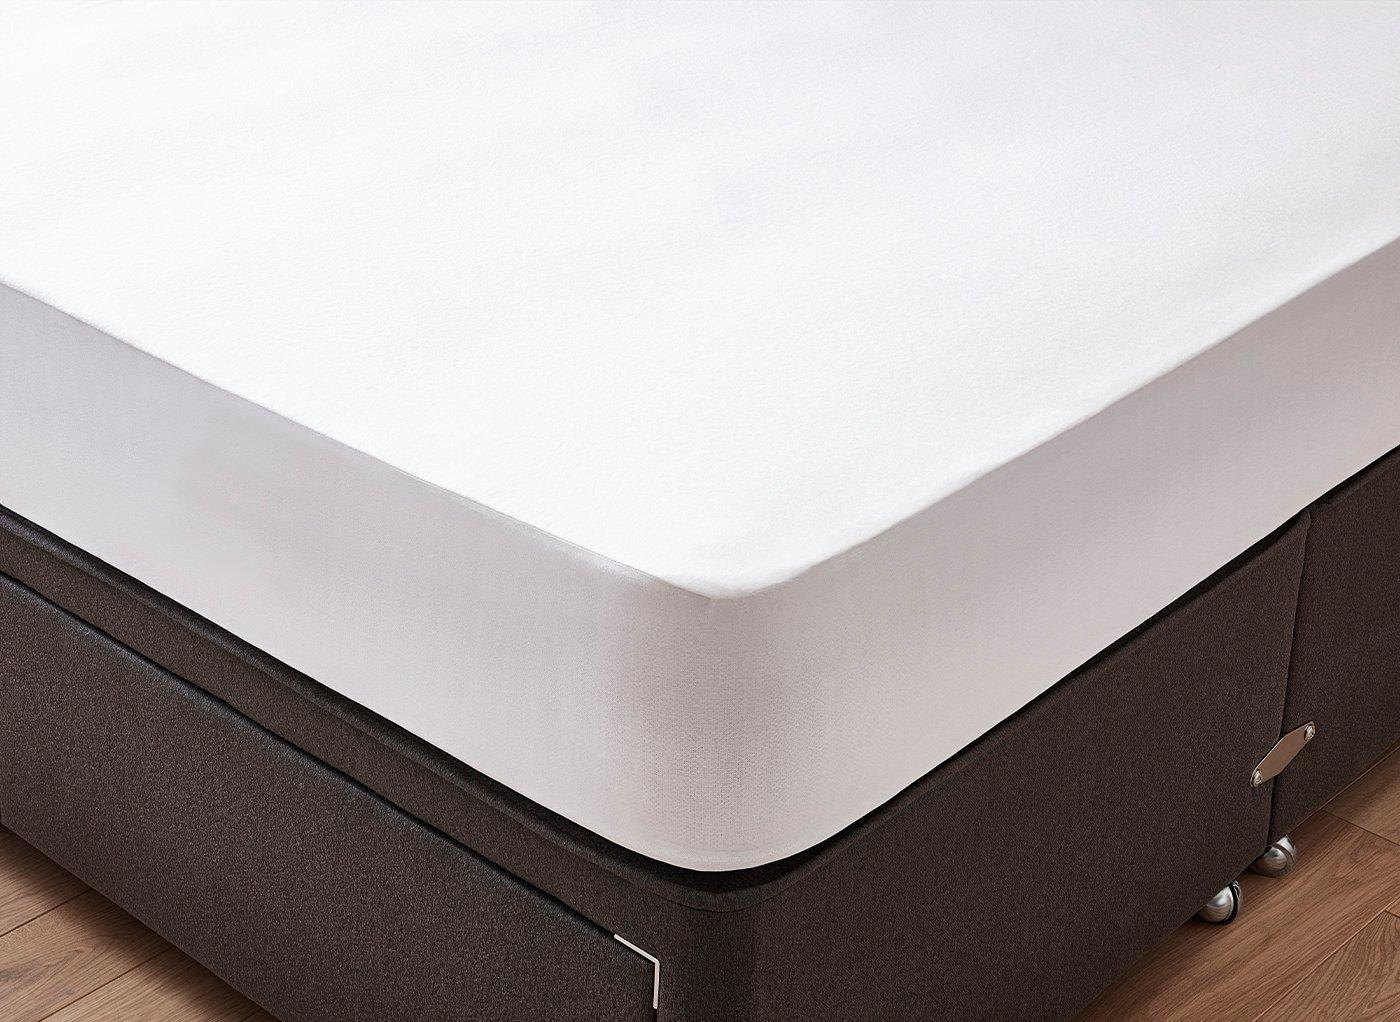 Doze Anti-Allergy Mattress Protector Super King 6'0 Super king